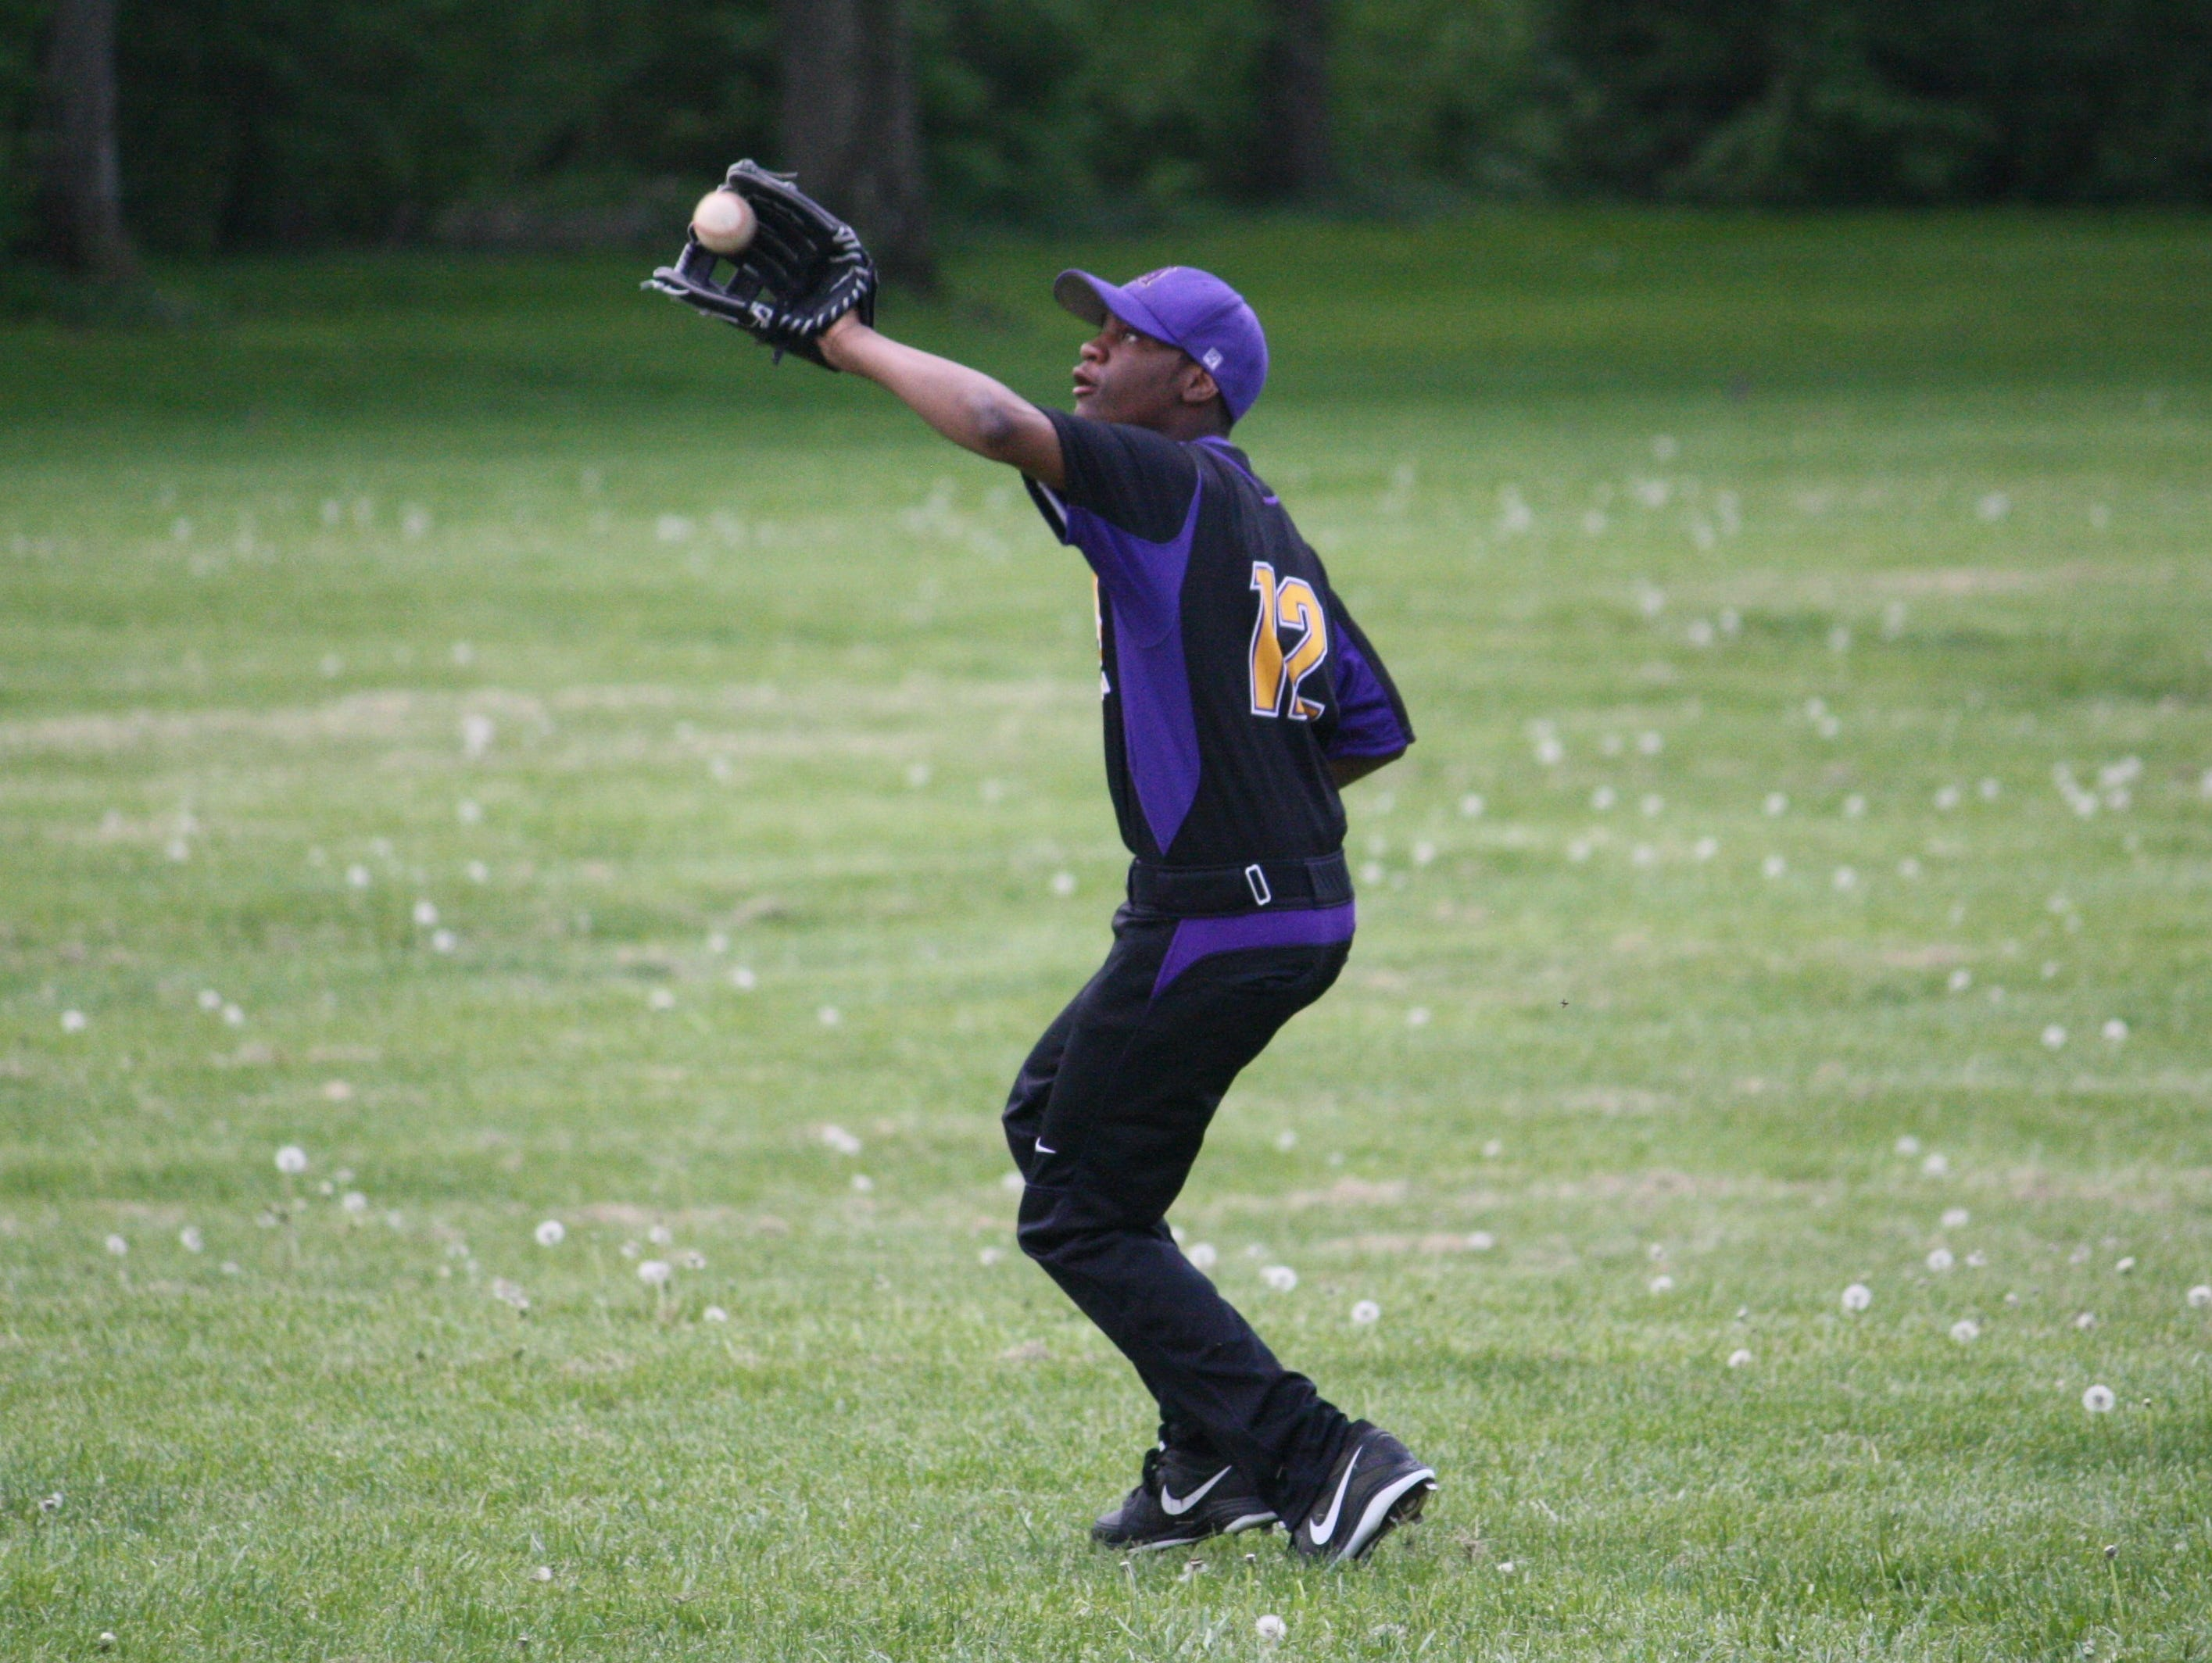 Aiken sophomore Kale Franklin makes a catch in right field against Lockland May 2.